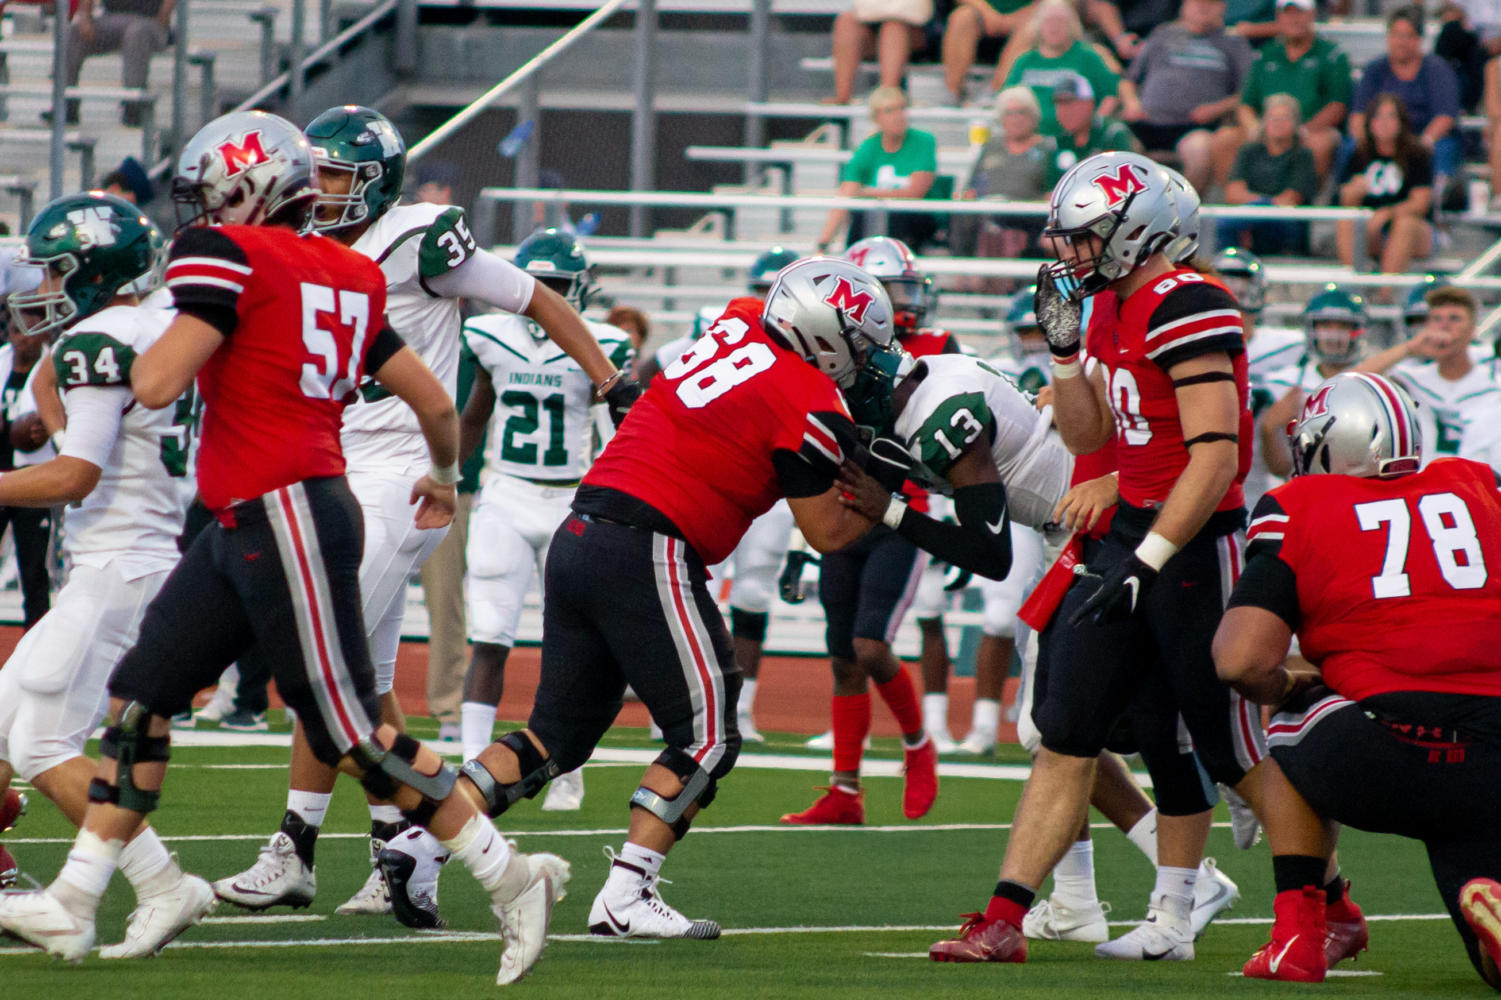 The Marauders played the Waxahachie Indians last week at their home opener and came out on top 55-38.